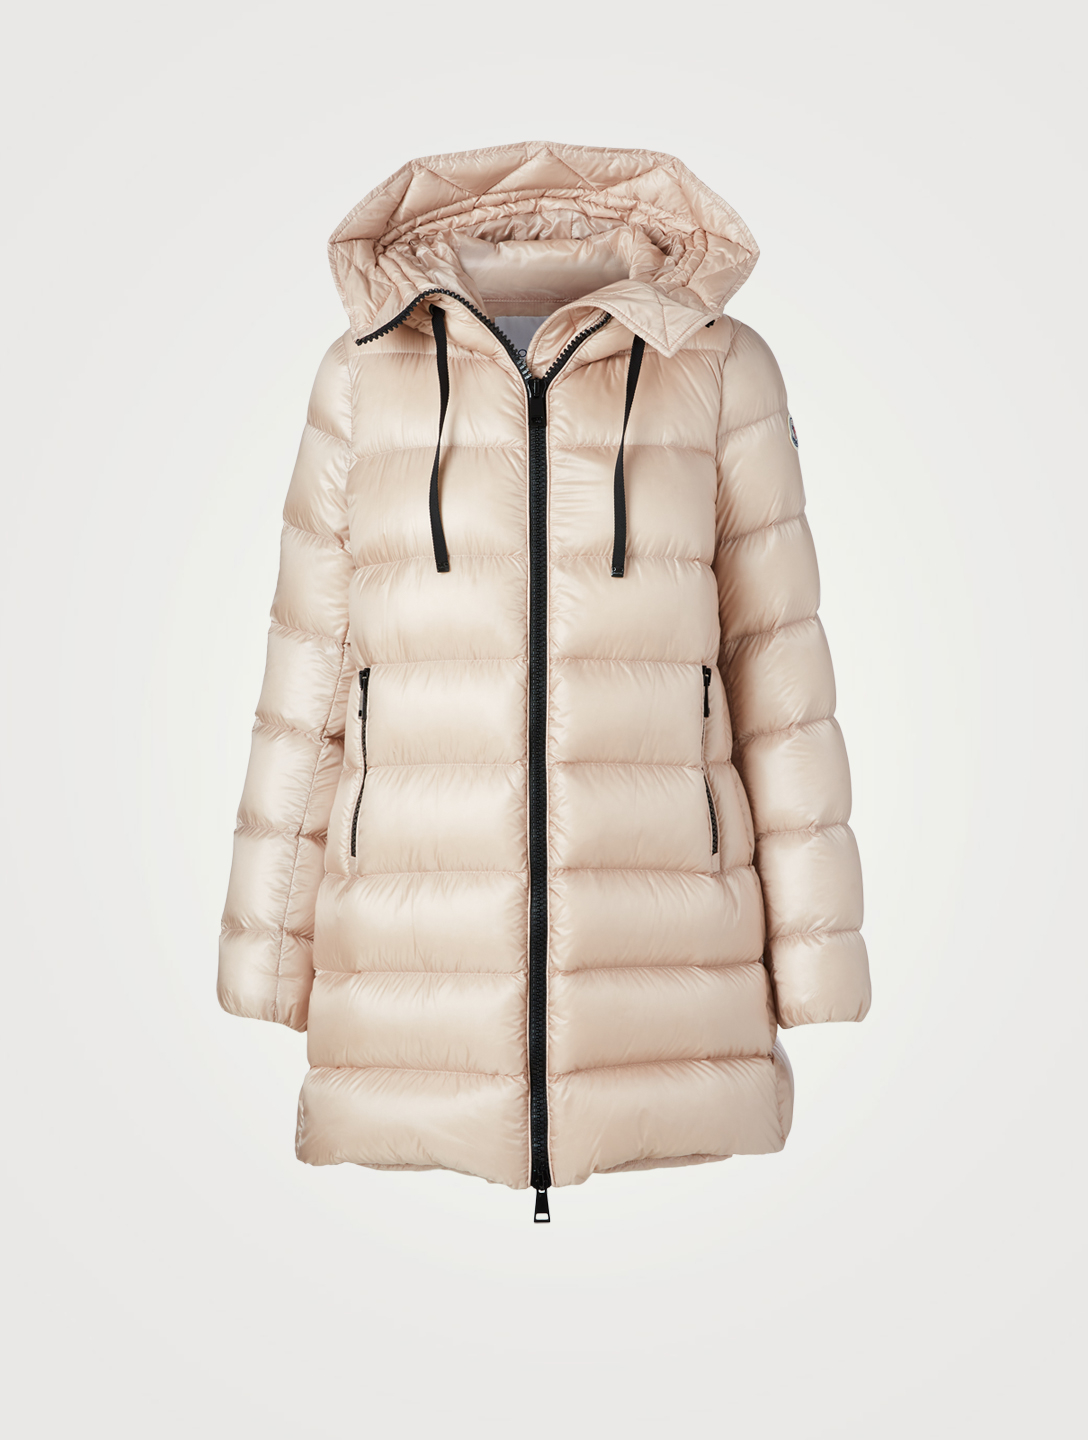 MONCLER Suyen Down Parka With Hood Women's Pink